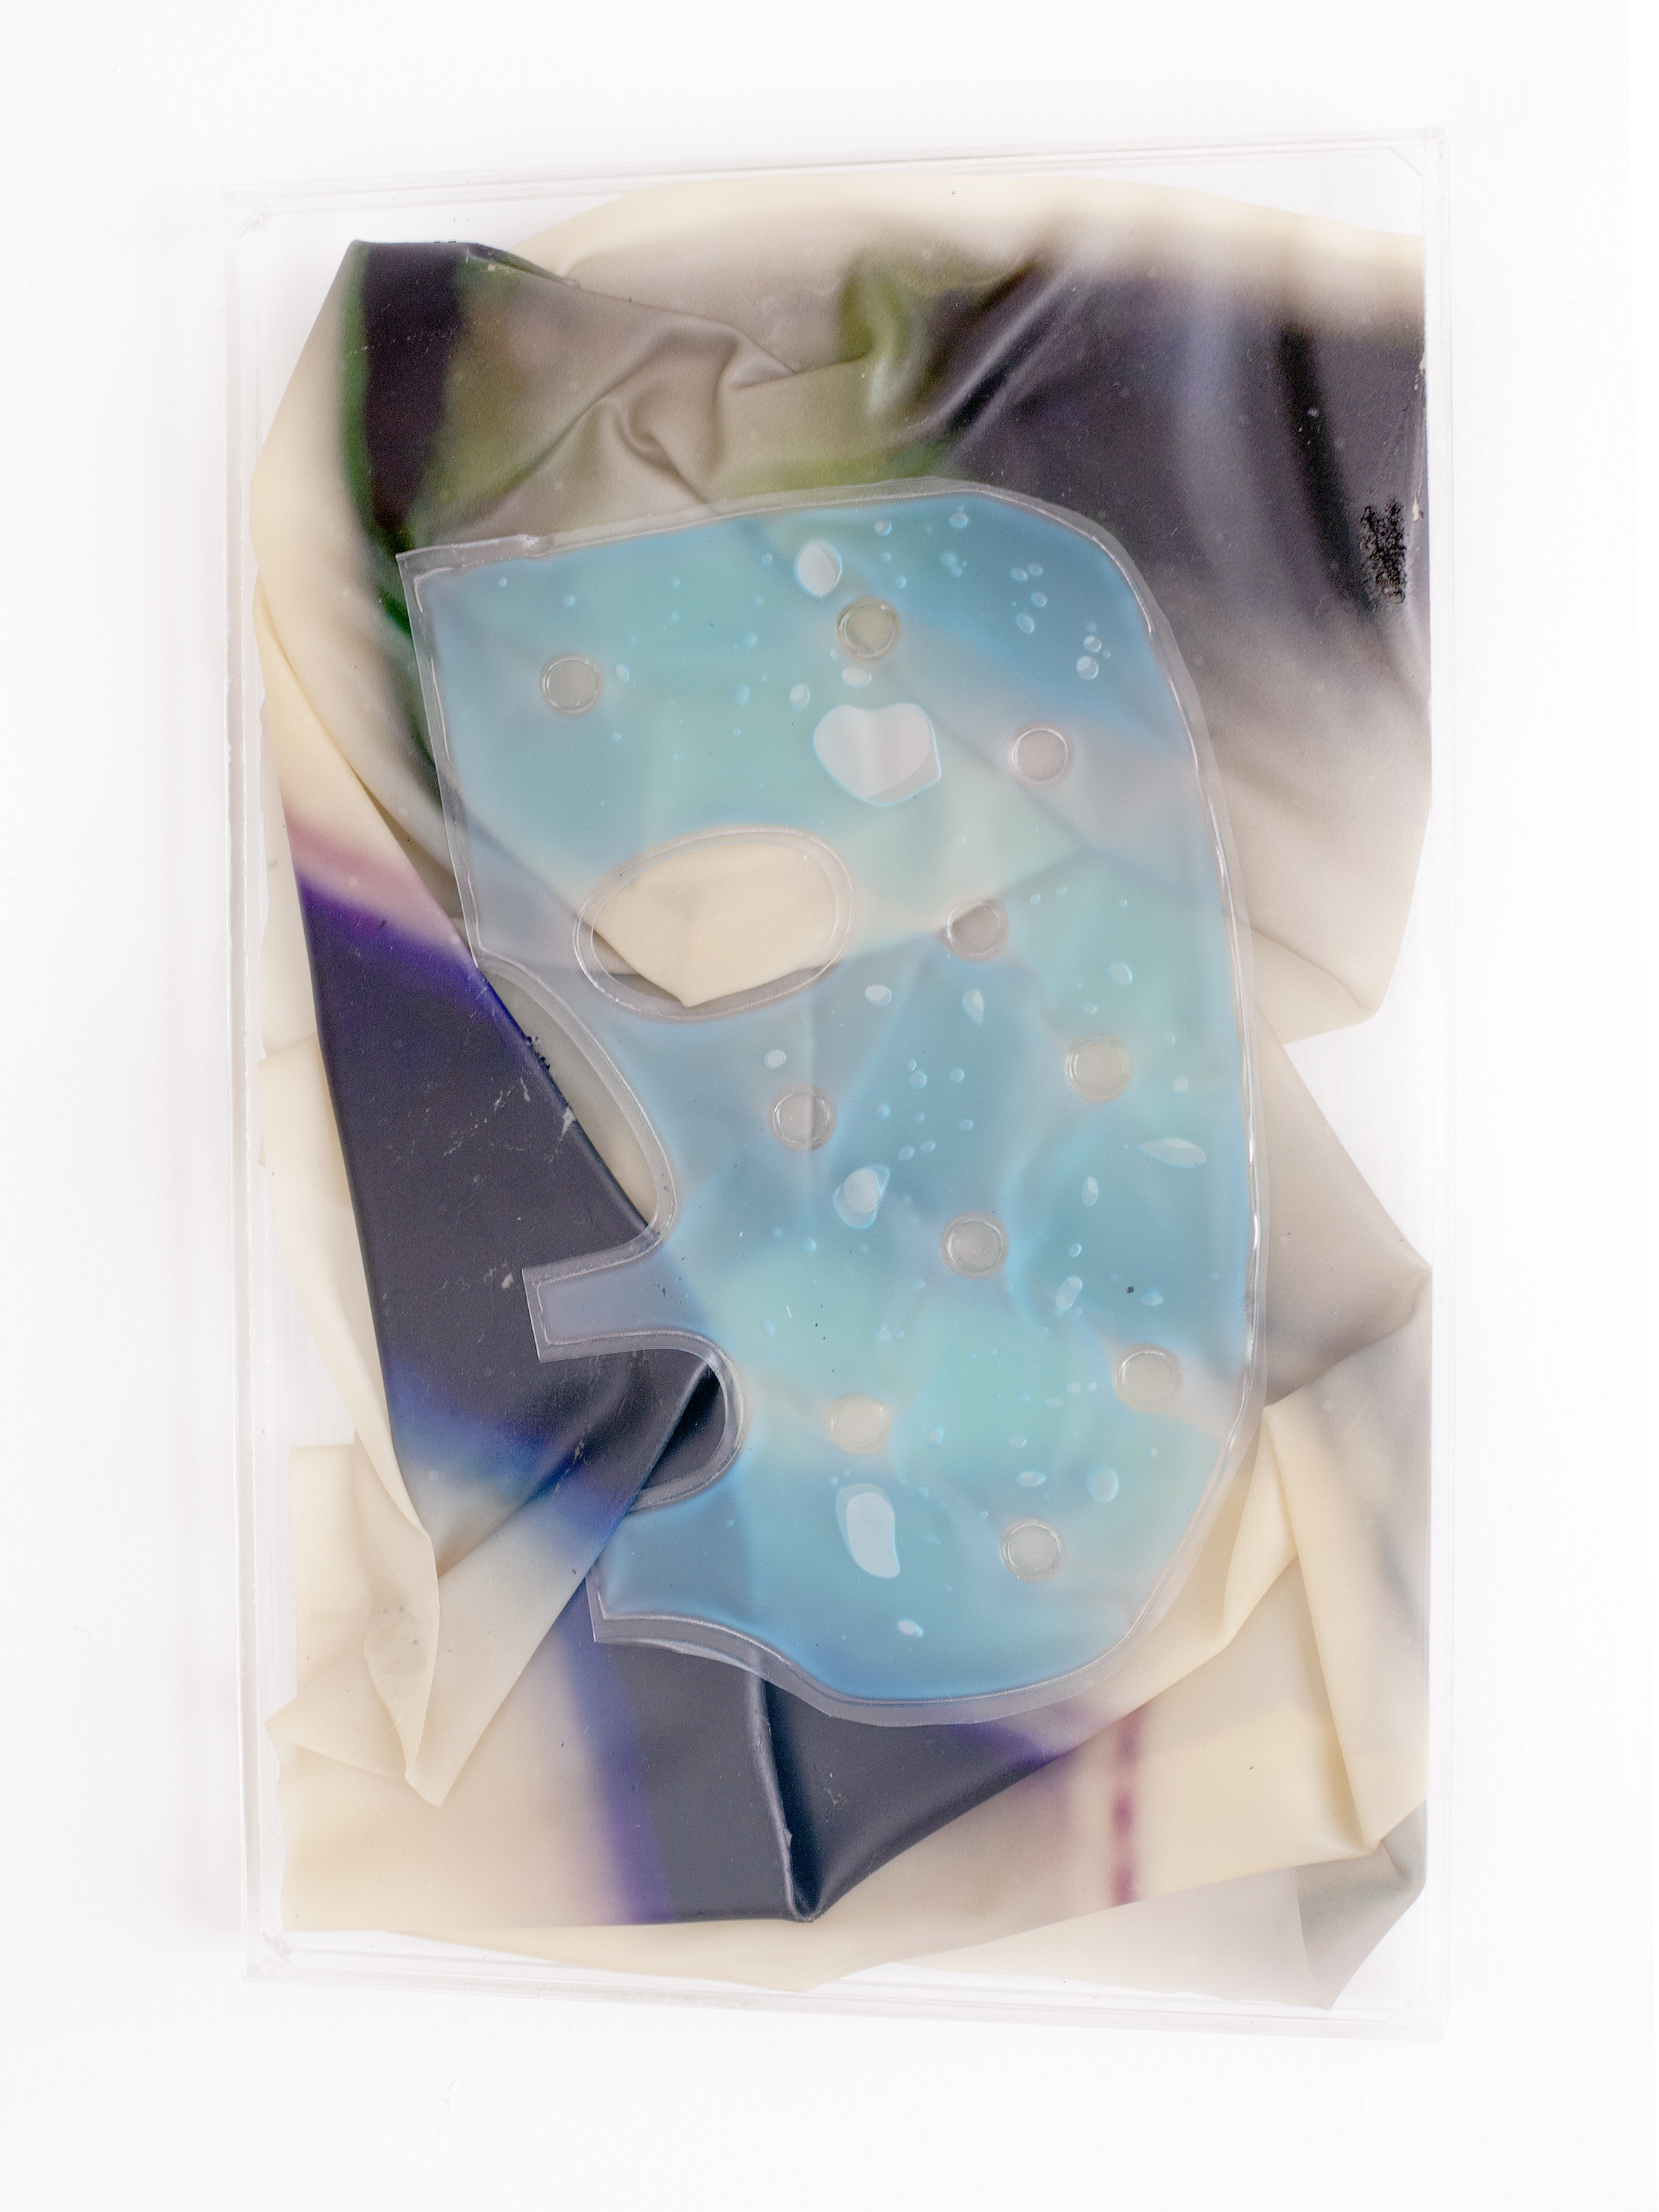 MOONSTRUCK,  2018, sculpture (unique), 30 X 20 x 1,6 cm, inkjetprint on latex, transparent acrylic, ½ face gel mask